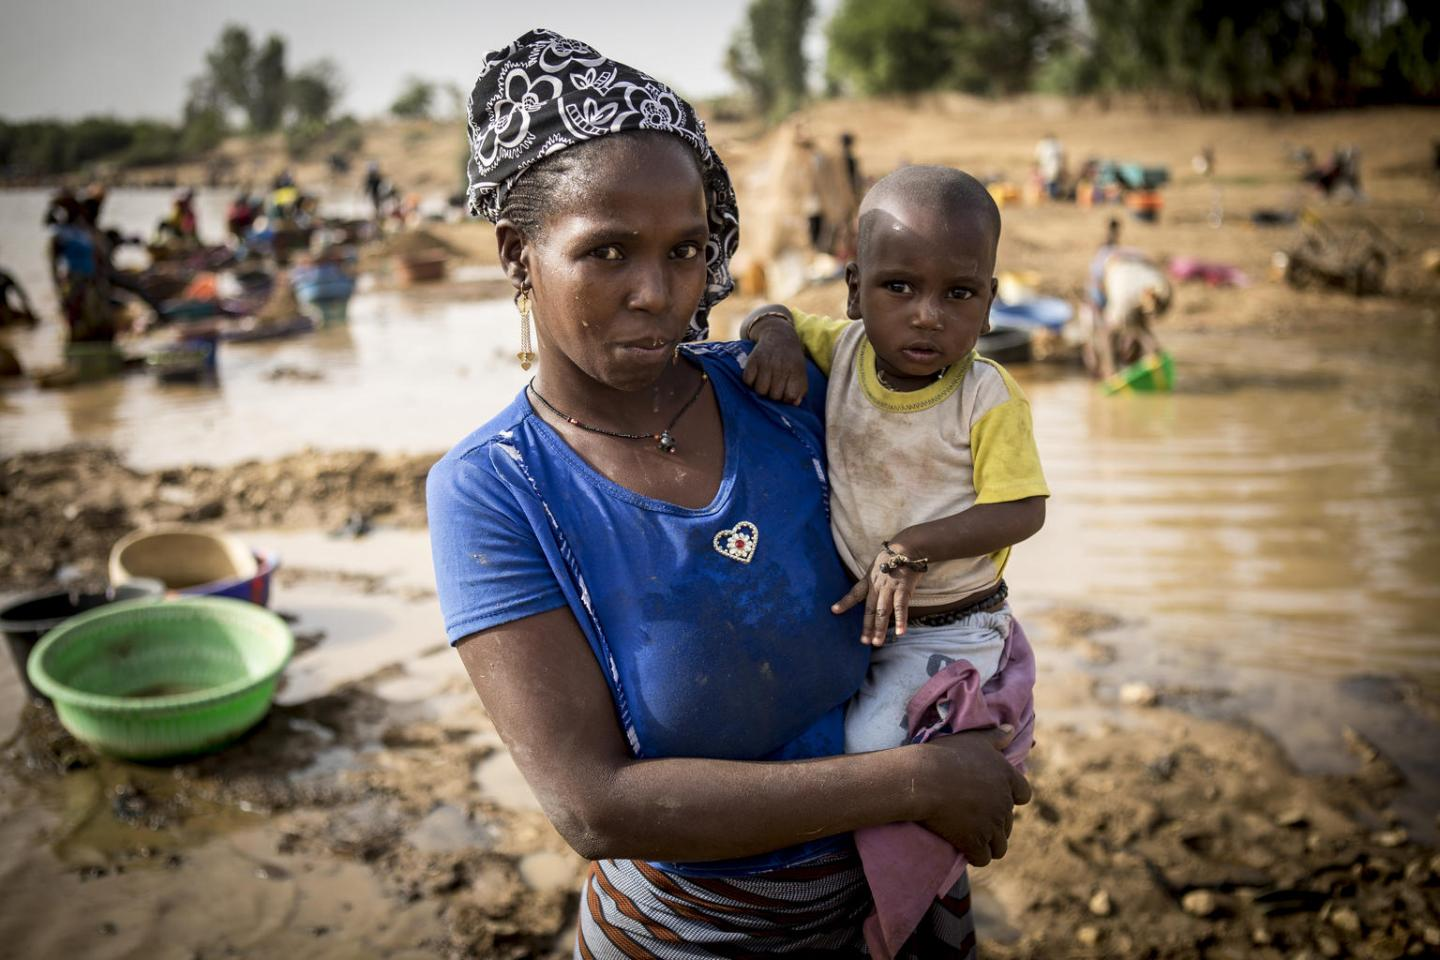 unicef.org - In Mali, living on a gold mine comes at the expense of healthcare